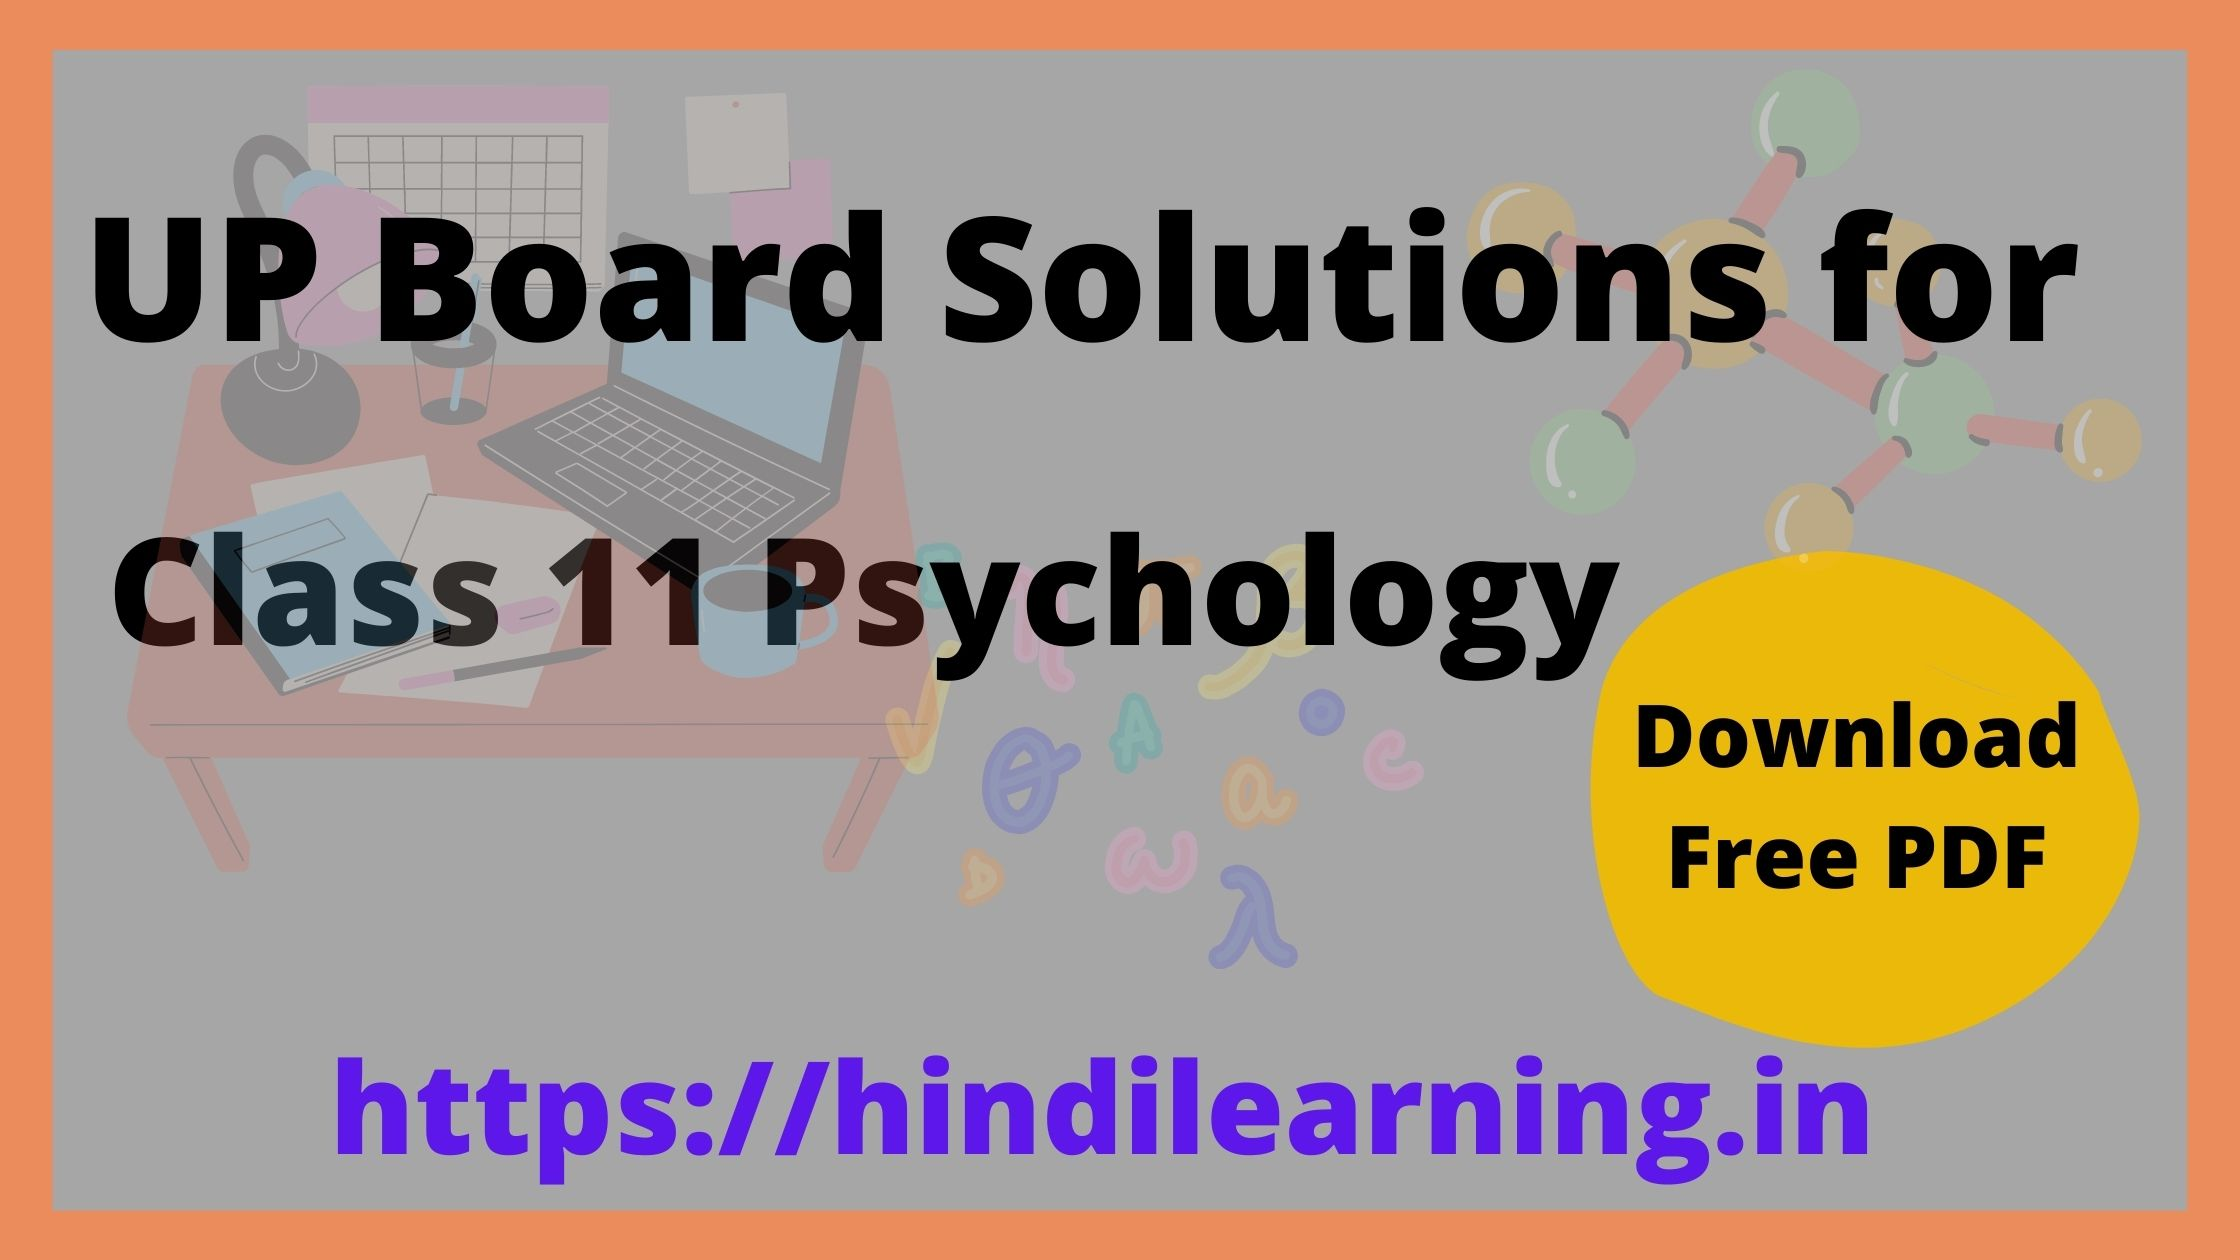 UP Board Solutions for Class 11 Psychology मनोविज्ञान